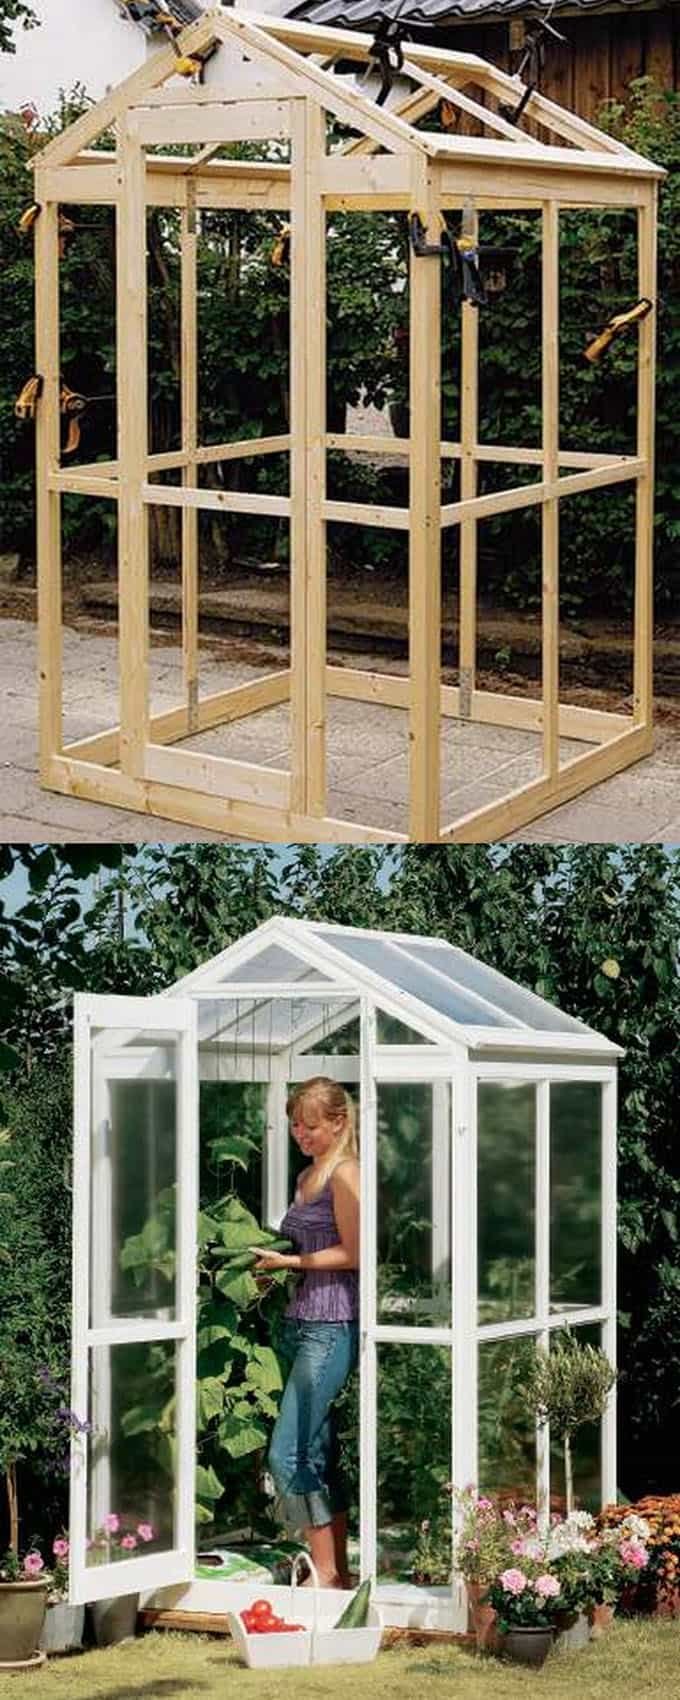 42 Best DIY Greenhouses ( with Great Tutorials and Plans! ) - A